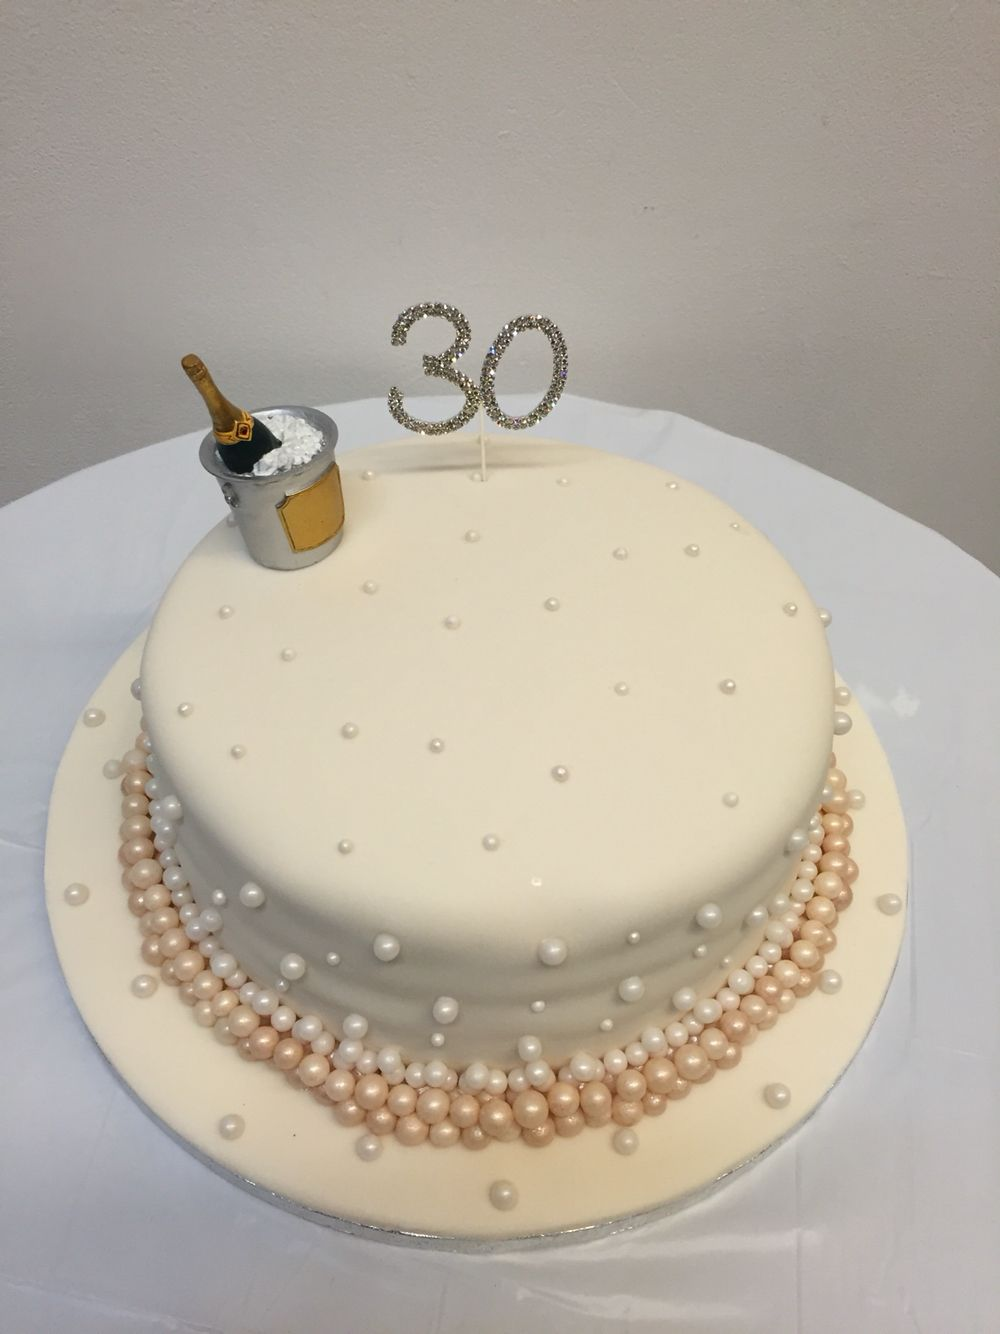 Cake Decorations For 30th Wedding Anniversary : 30th (pearl) wedding anniversary cake - lemon cake with ...